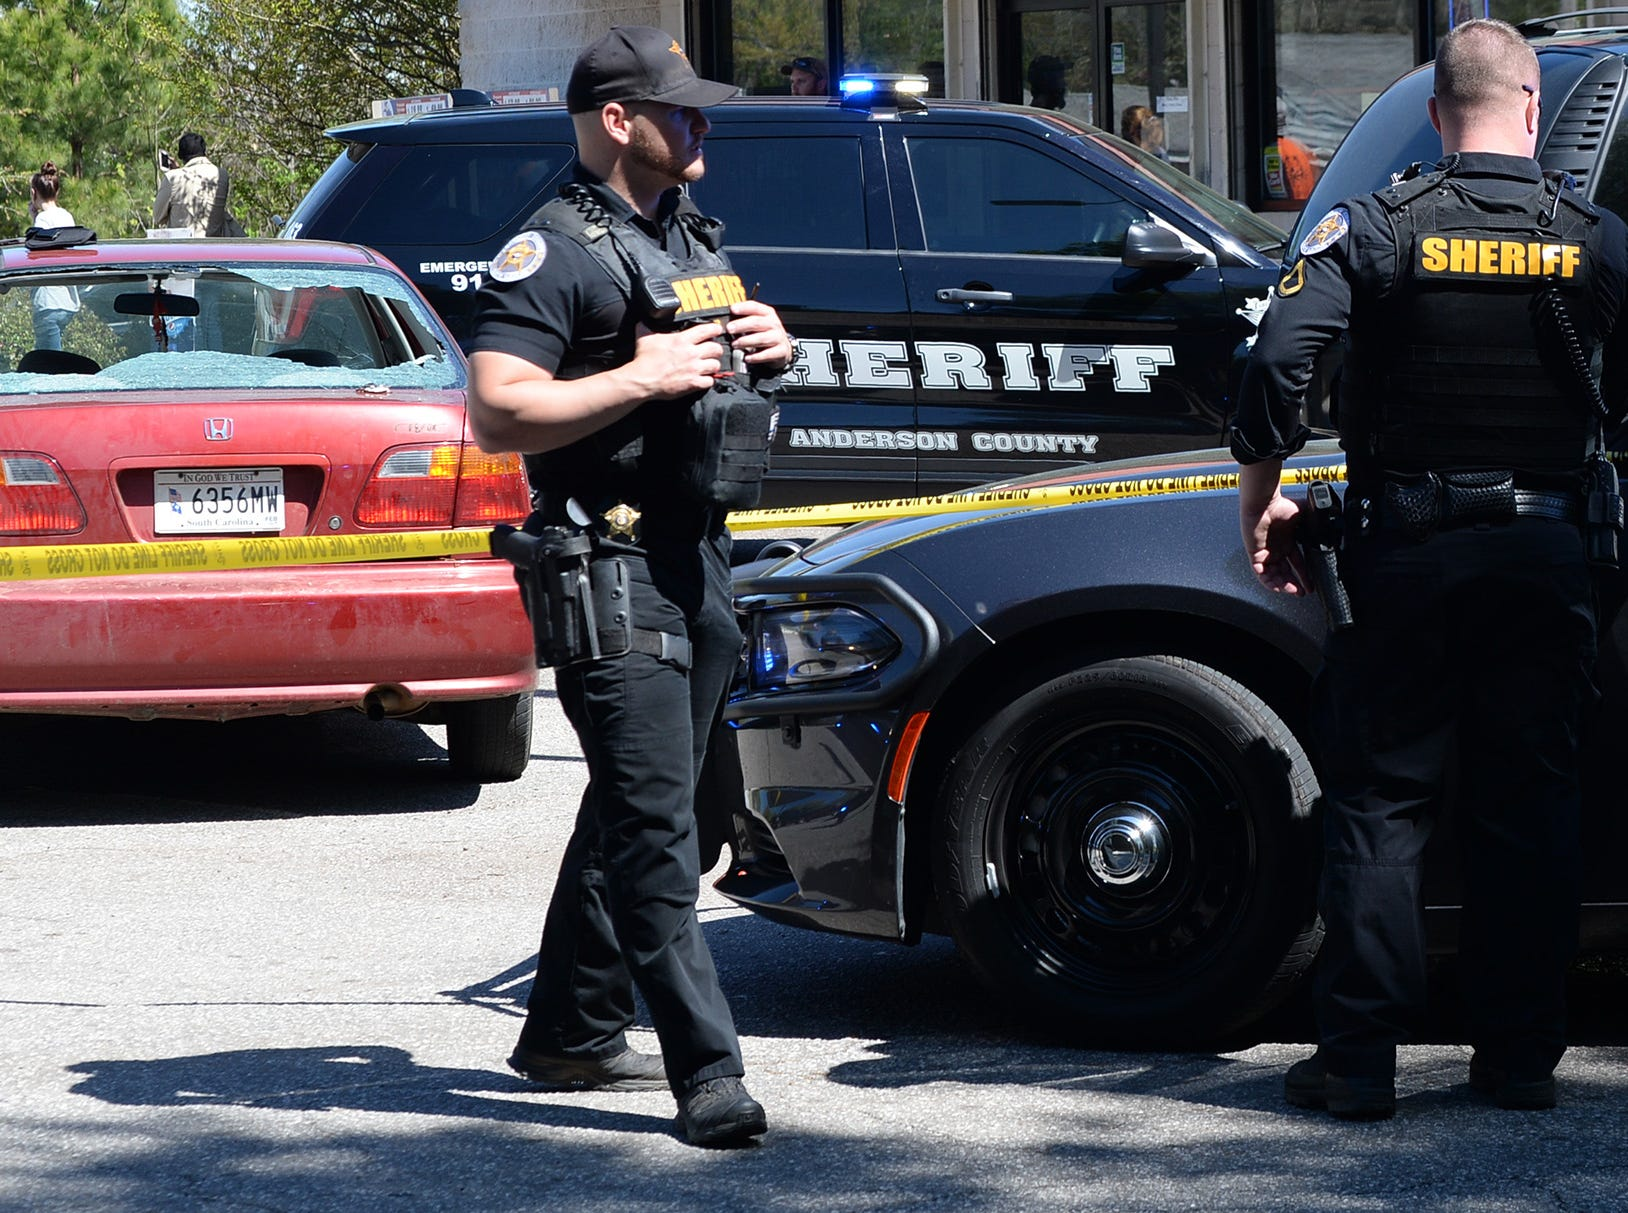 Anderson County Sheriff's Office deputies respond to a shooting at Hilltop Motel on Hwy 29 where two people were reported shot and as many as seven were involved in a dispute Wednesday, April 10, 2019.